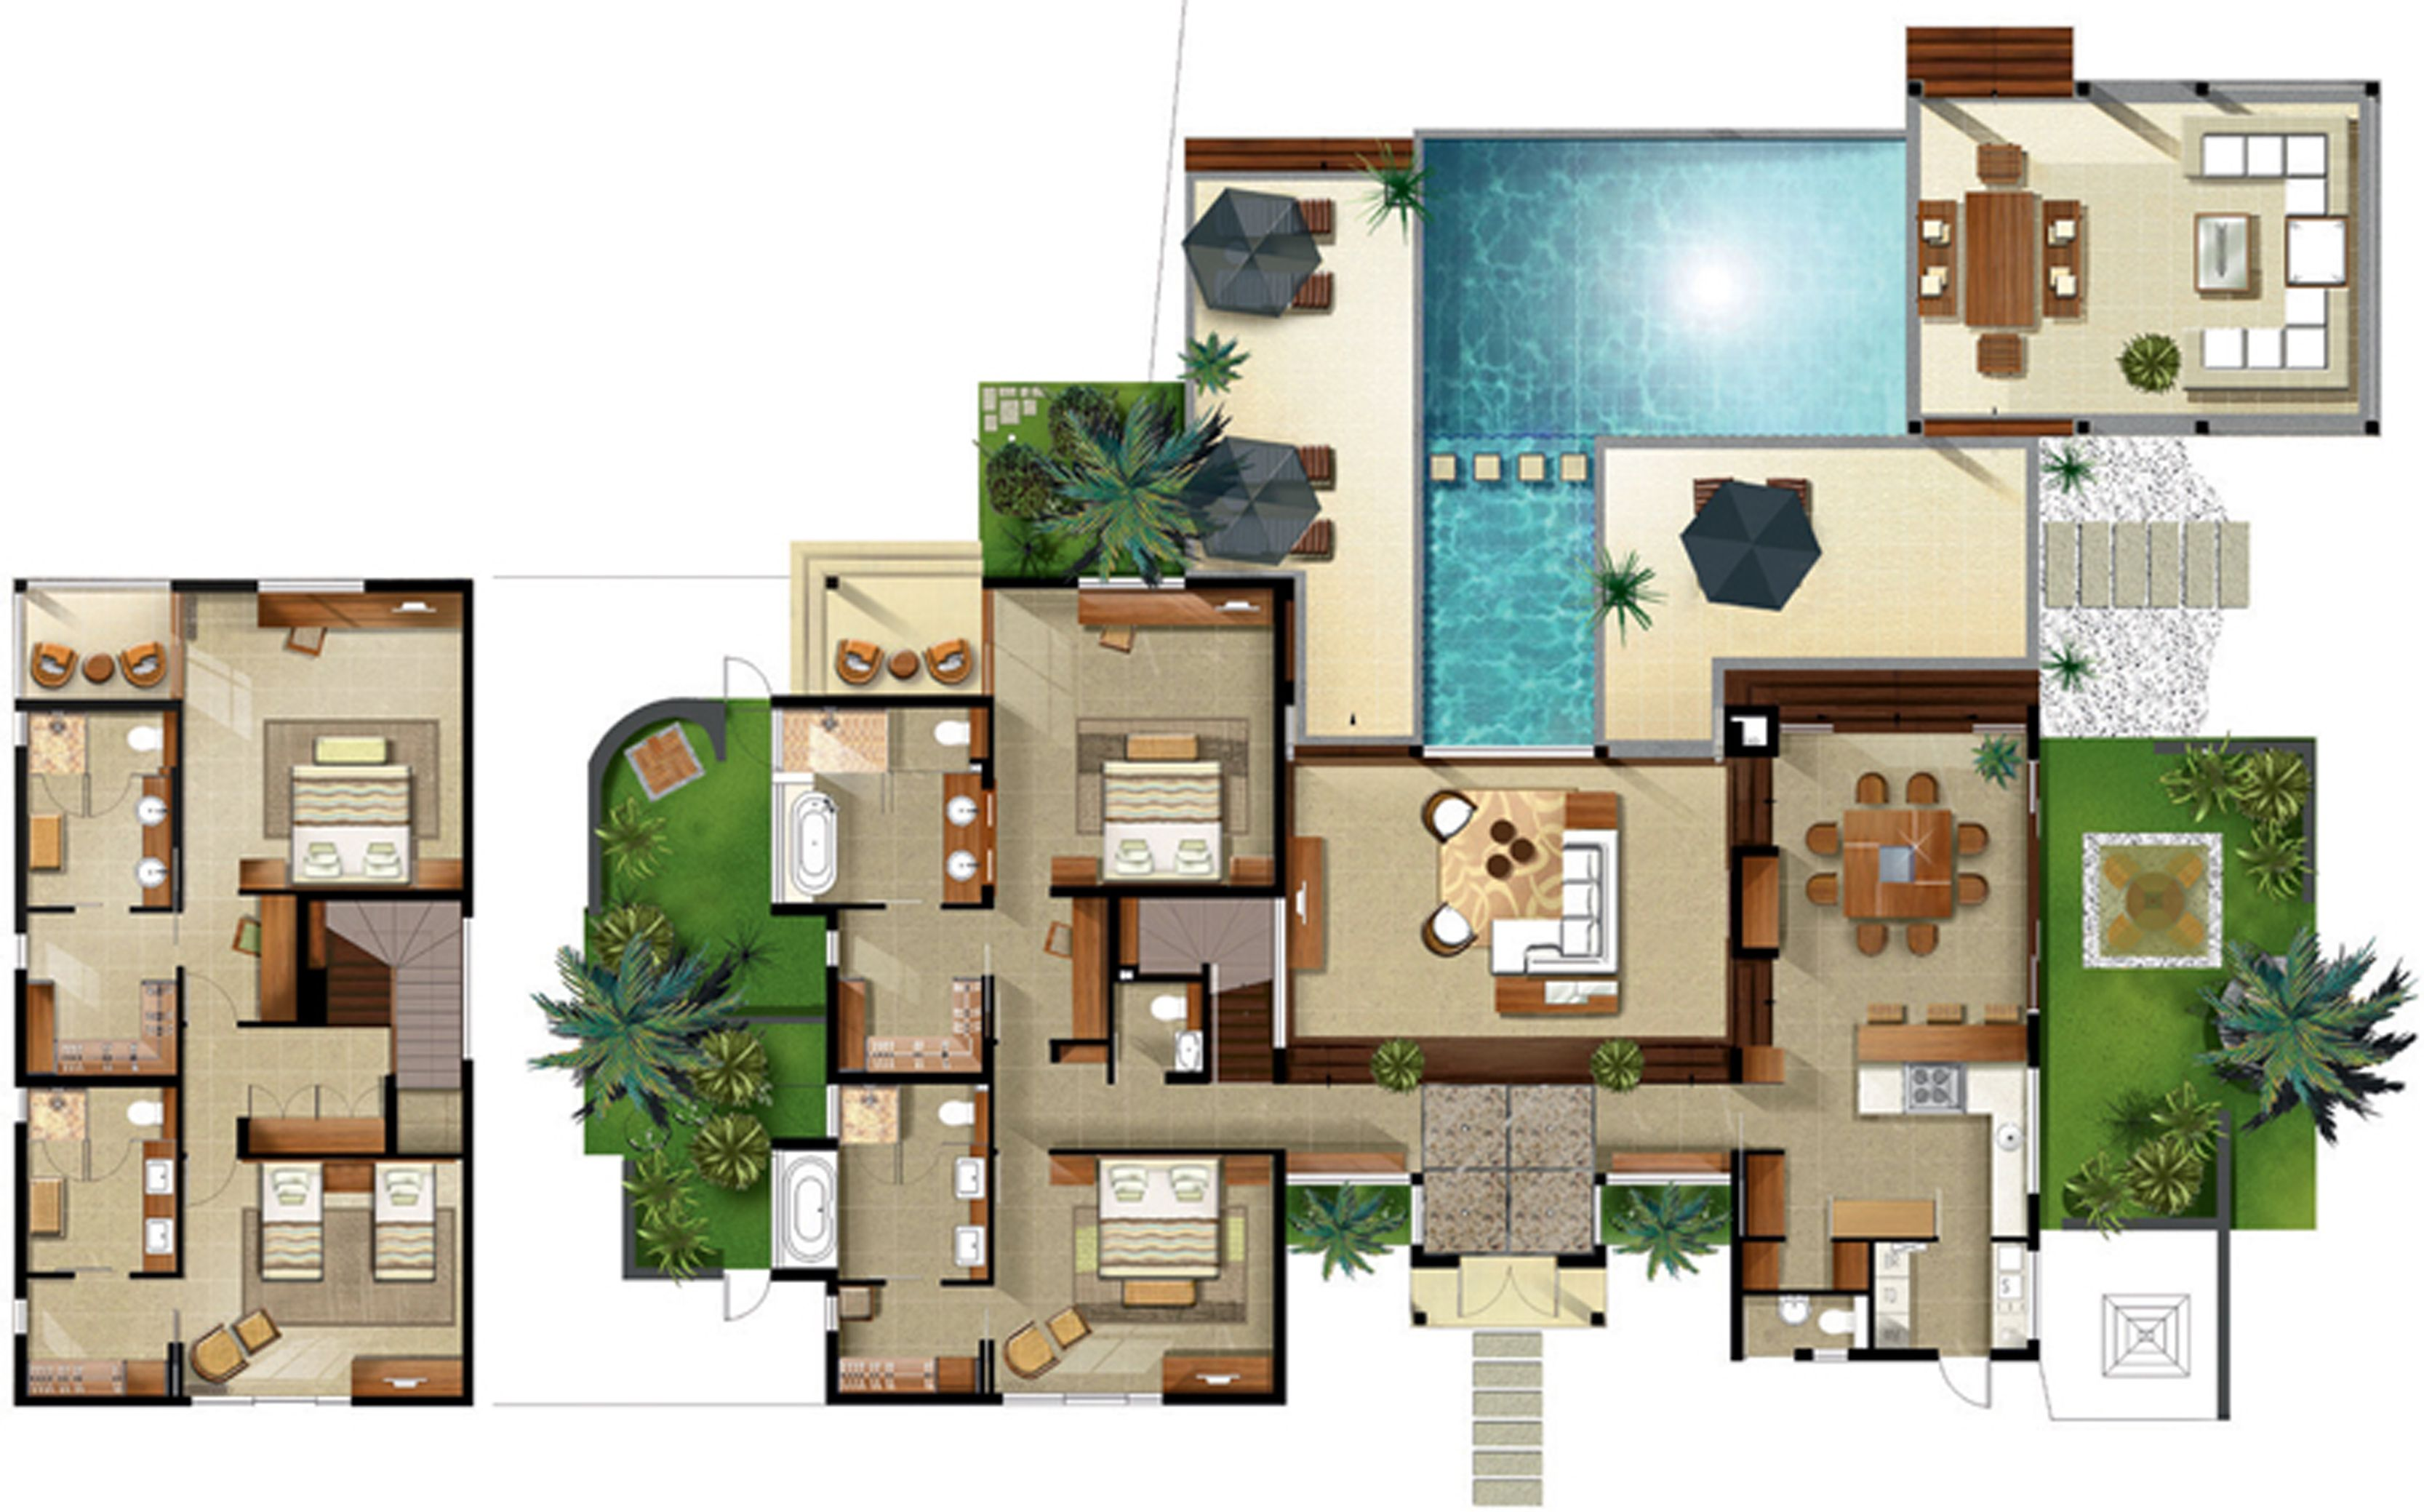 Disney beach club villas floor plan resort villa floor for Villa plans and designs